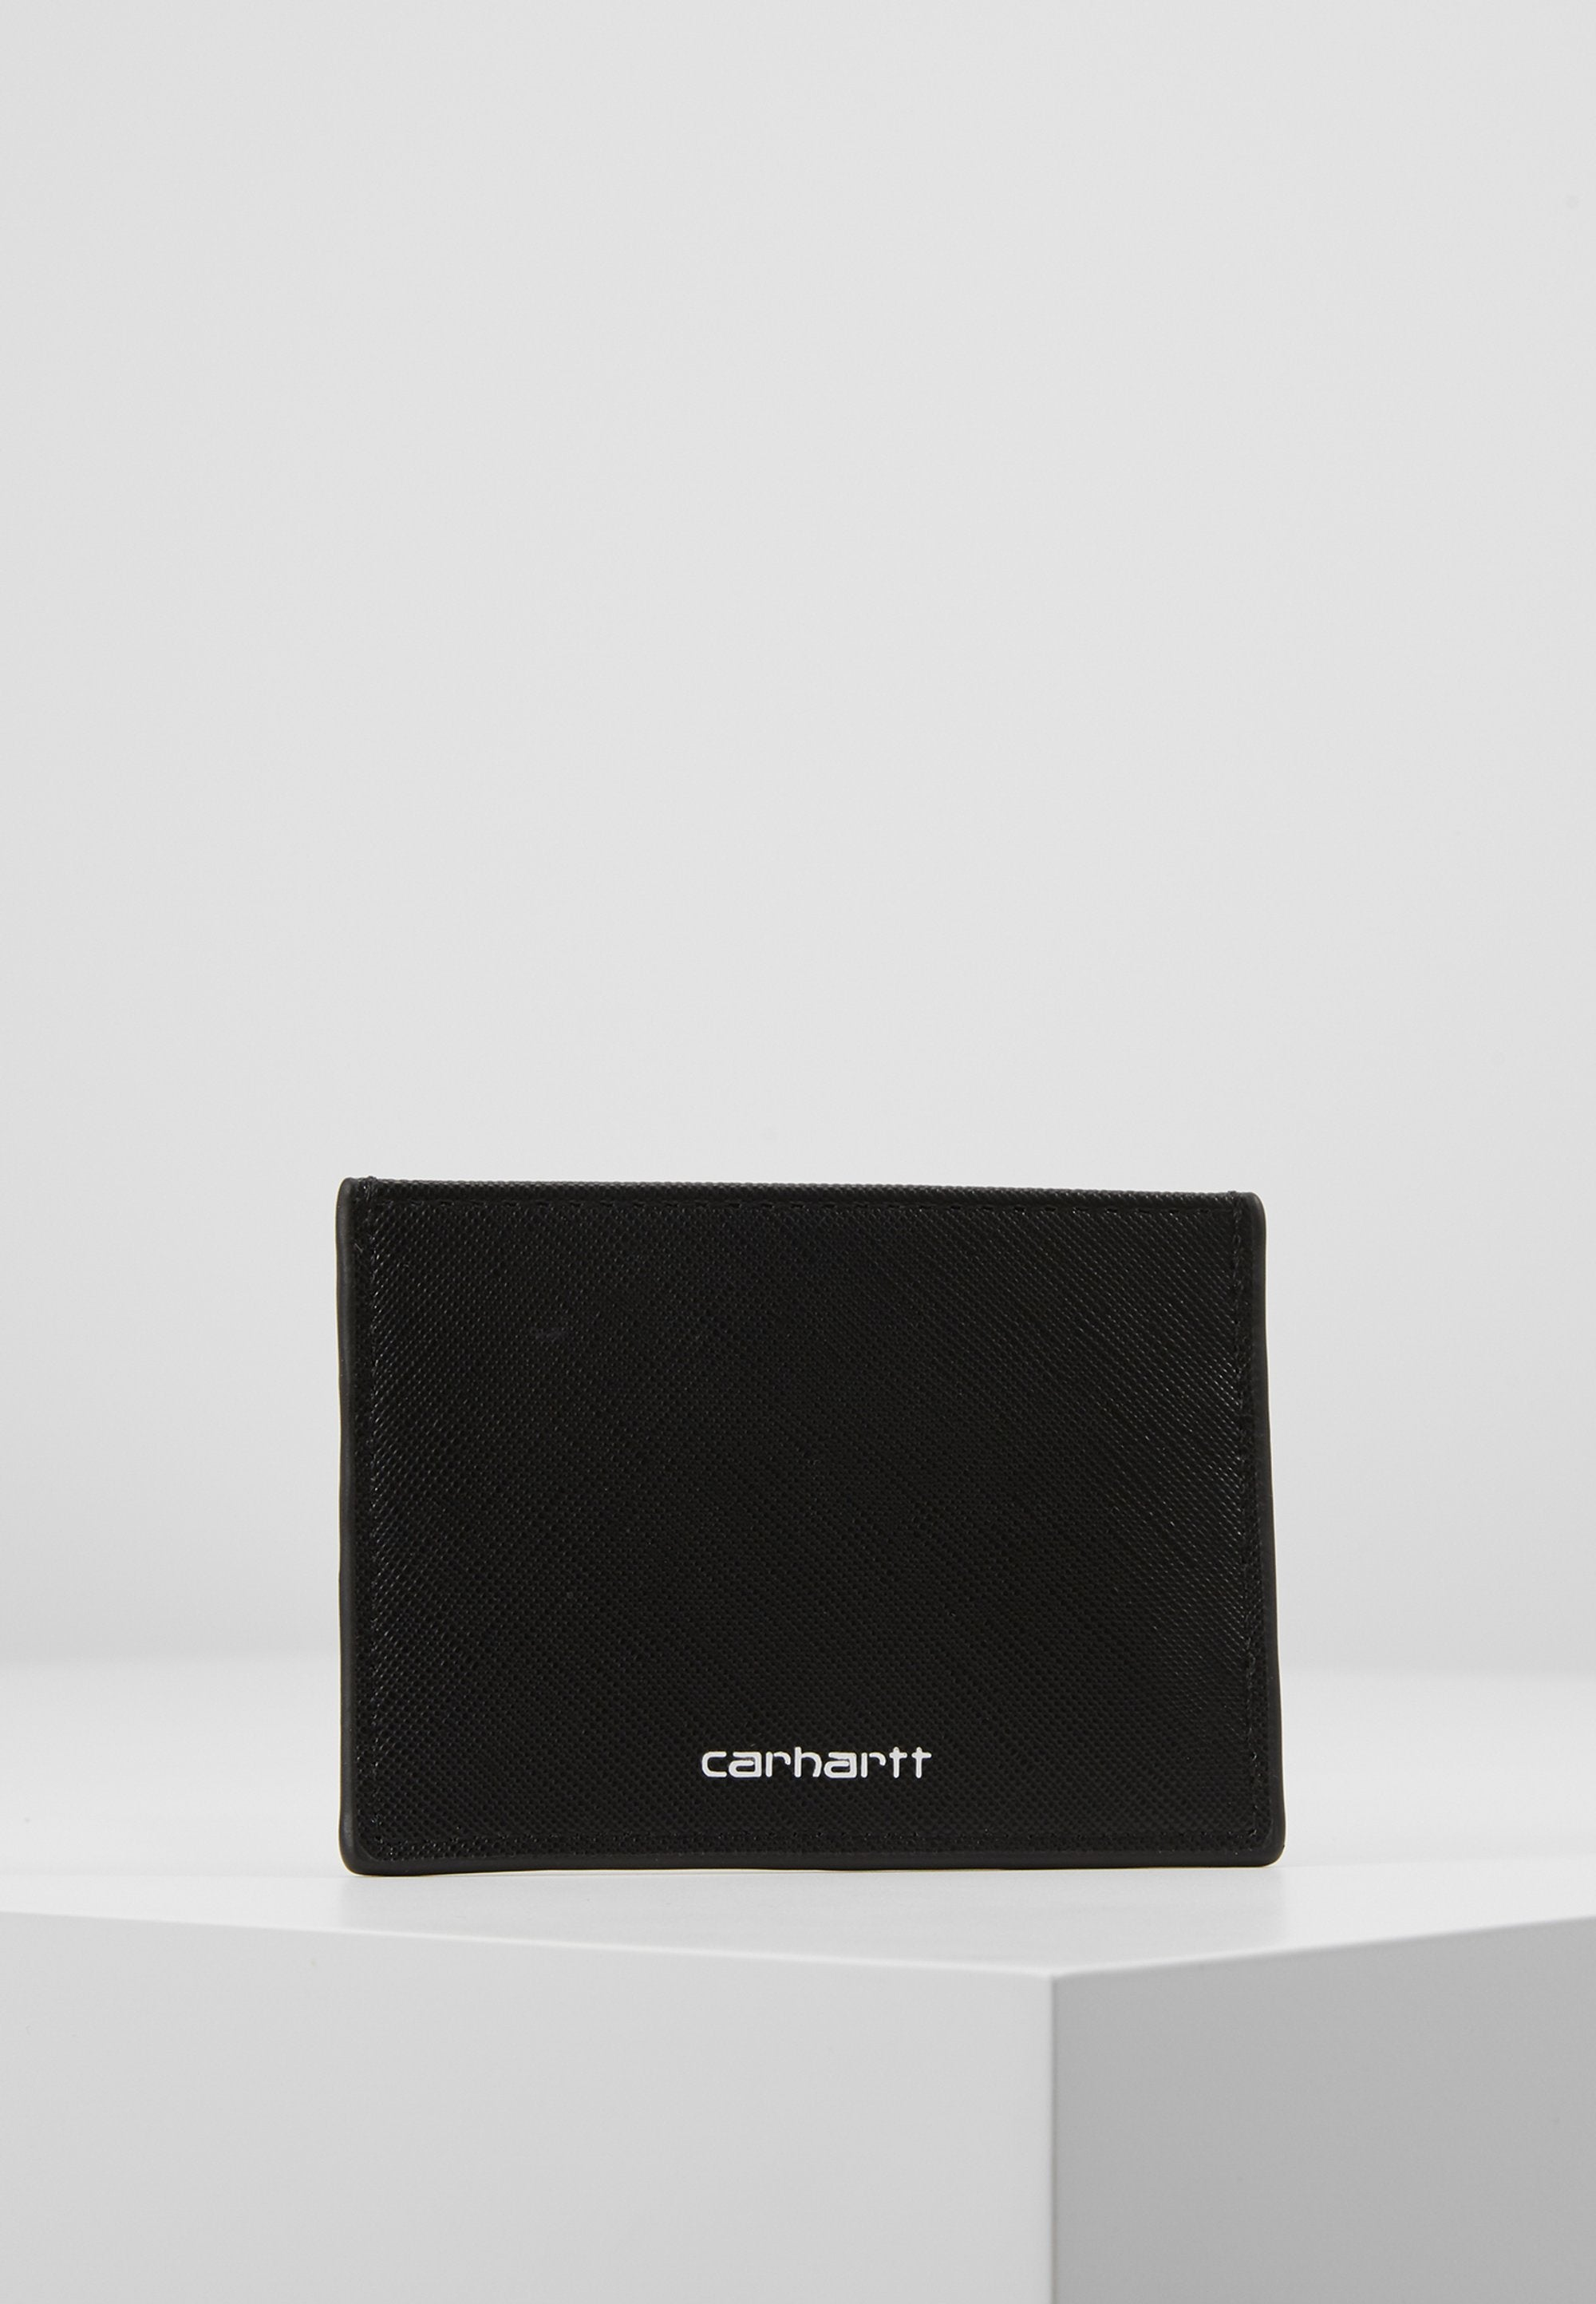 Carhartt  Card Holder